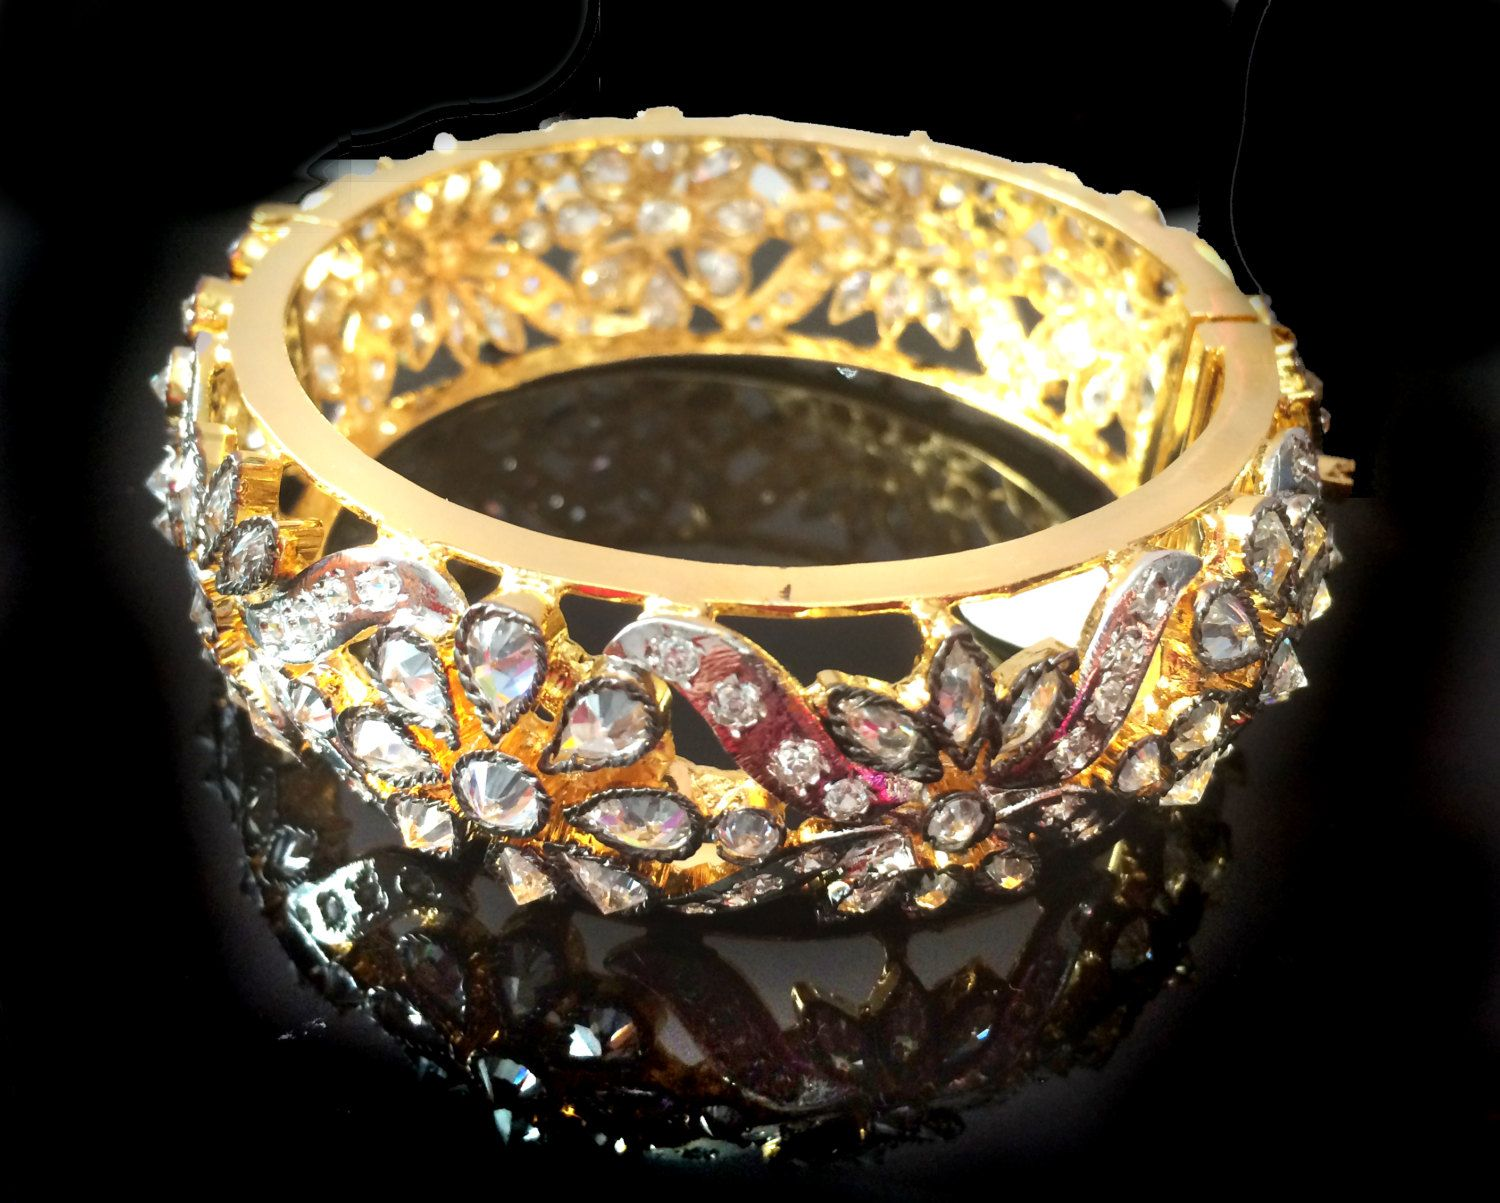 Gold Bangle BraceletTurkish jewelryrhodium platedStatement Bangle